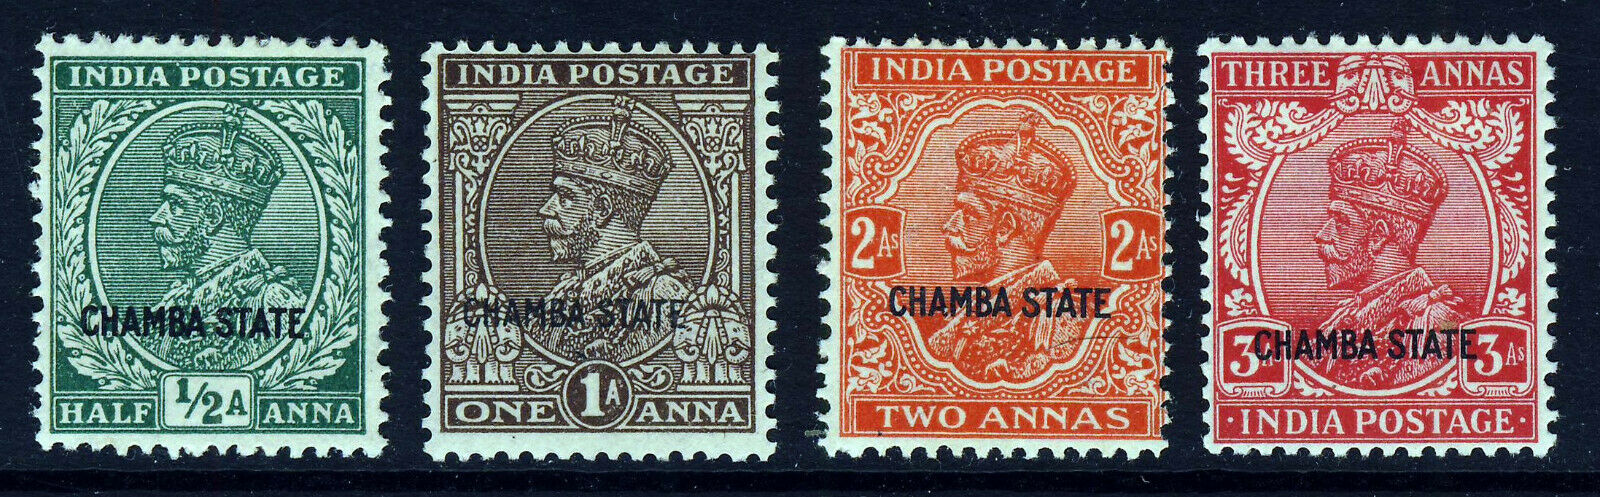 CHAMBA STATE INDIA King George VI 1935-36 Part Set to 3 As. SG 76 to SG 80 MINT